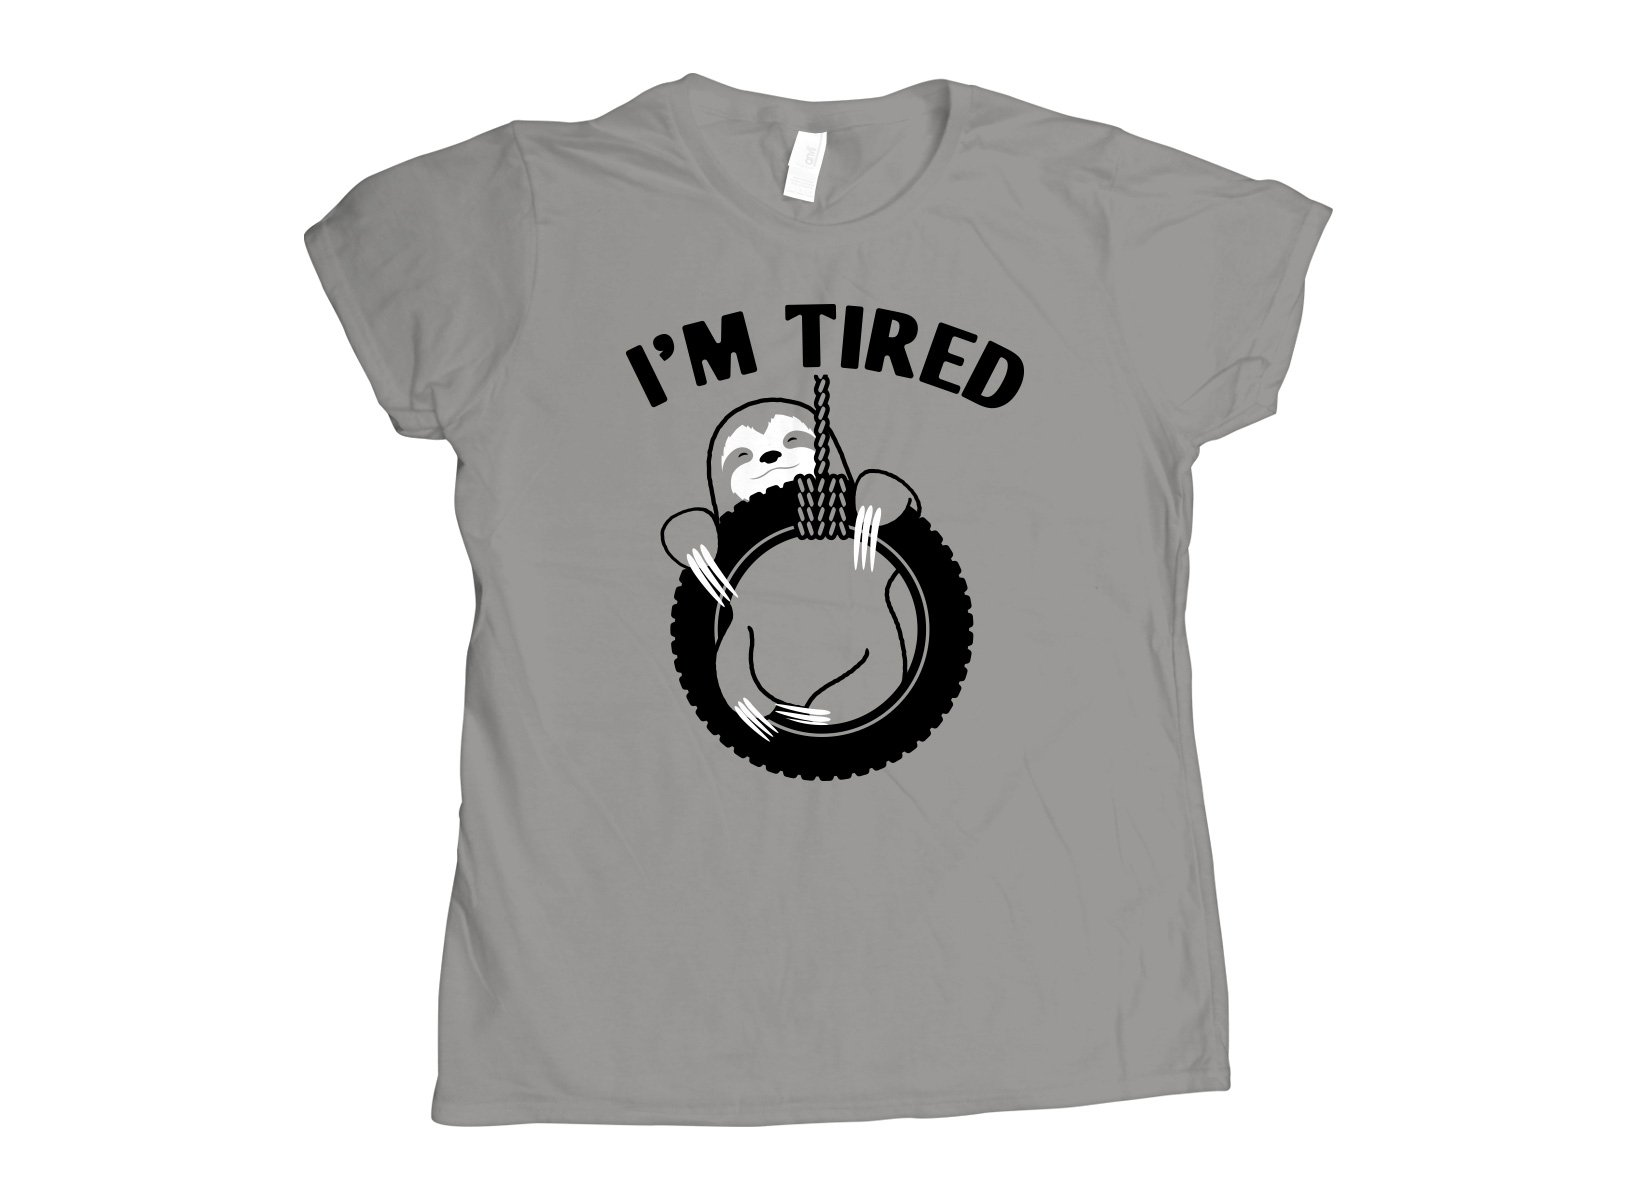 I'm Tired Sloth on Womens T-Shirt